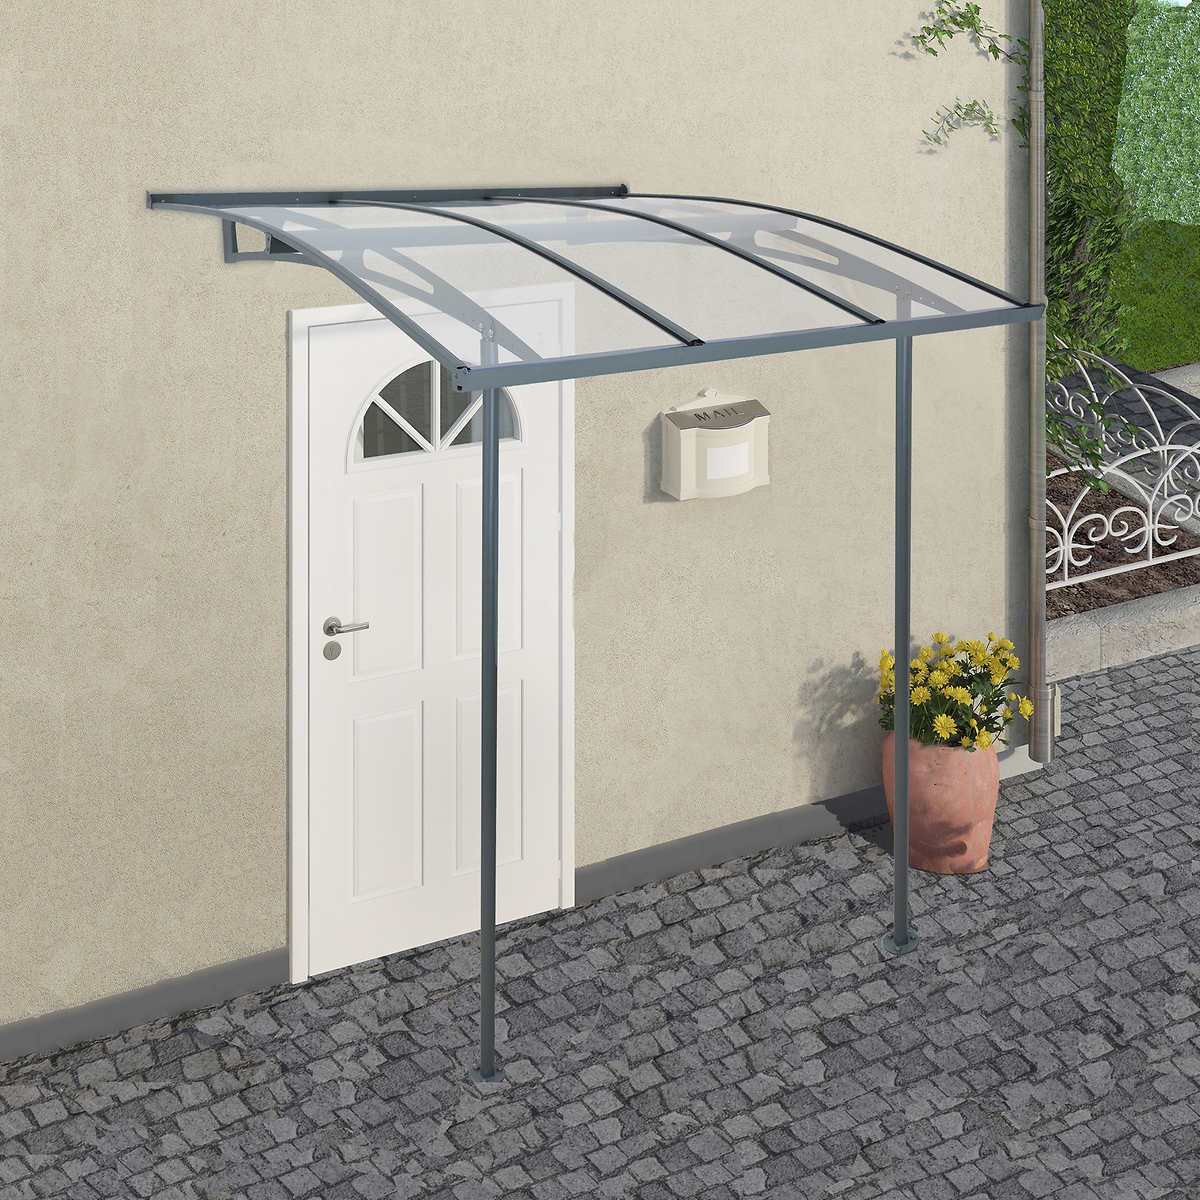 door designs doors front with sidelights shelterness cover cool